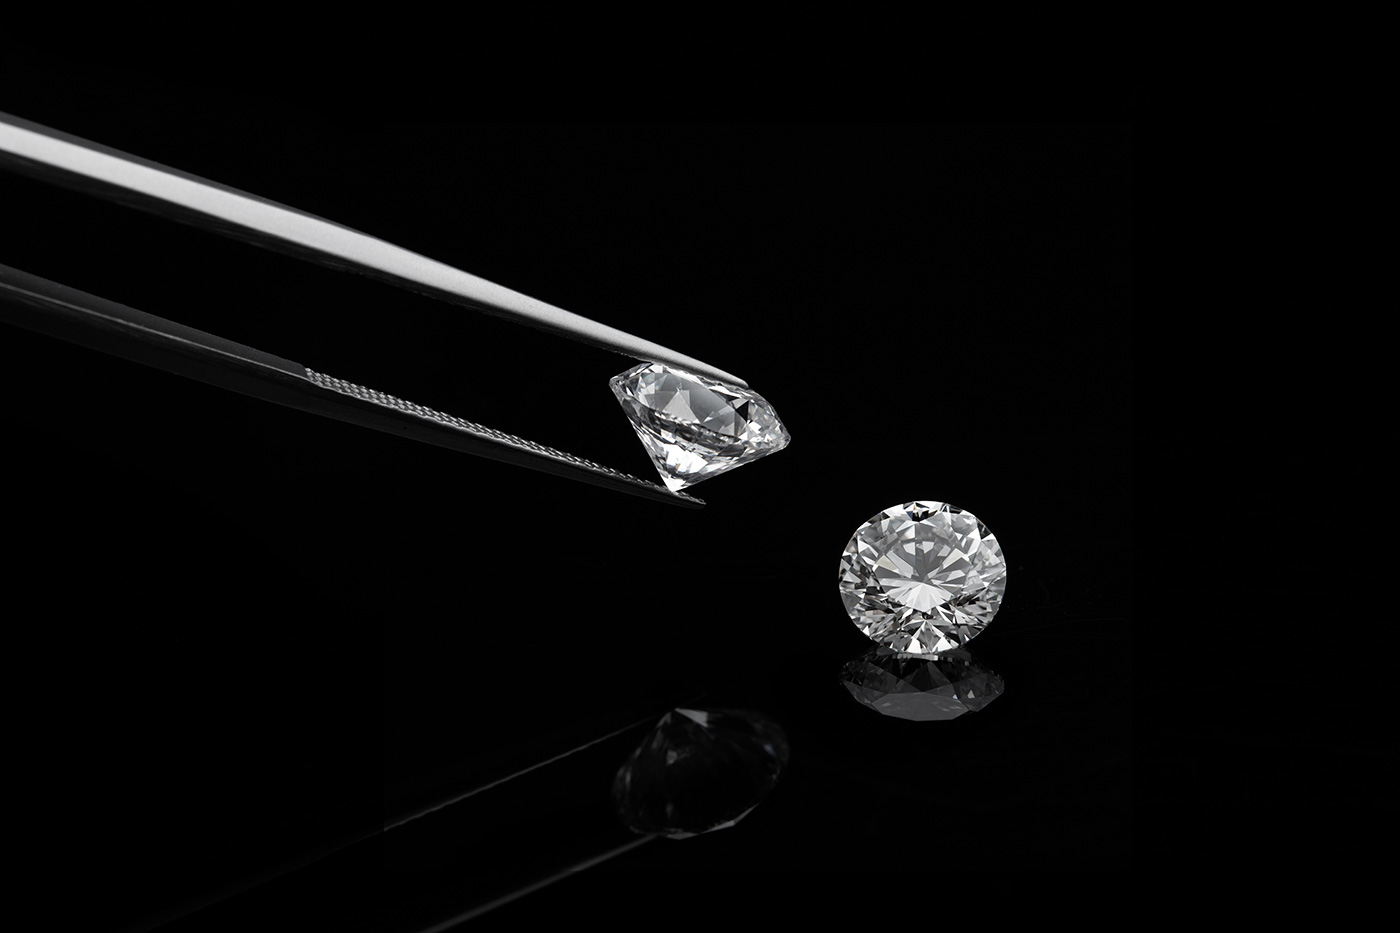 53M Americans to Buy Diamonds Between Thanksgiving and Valentine's Day